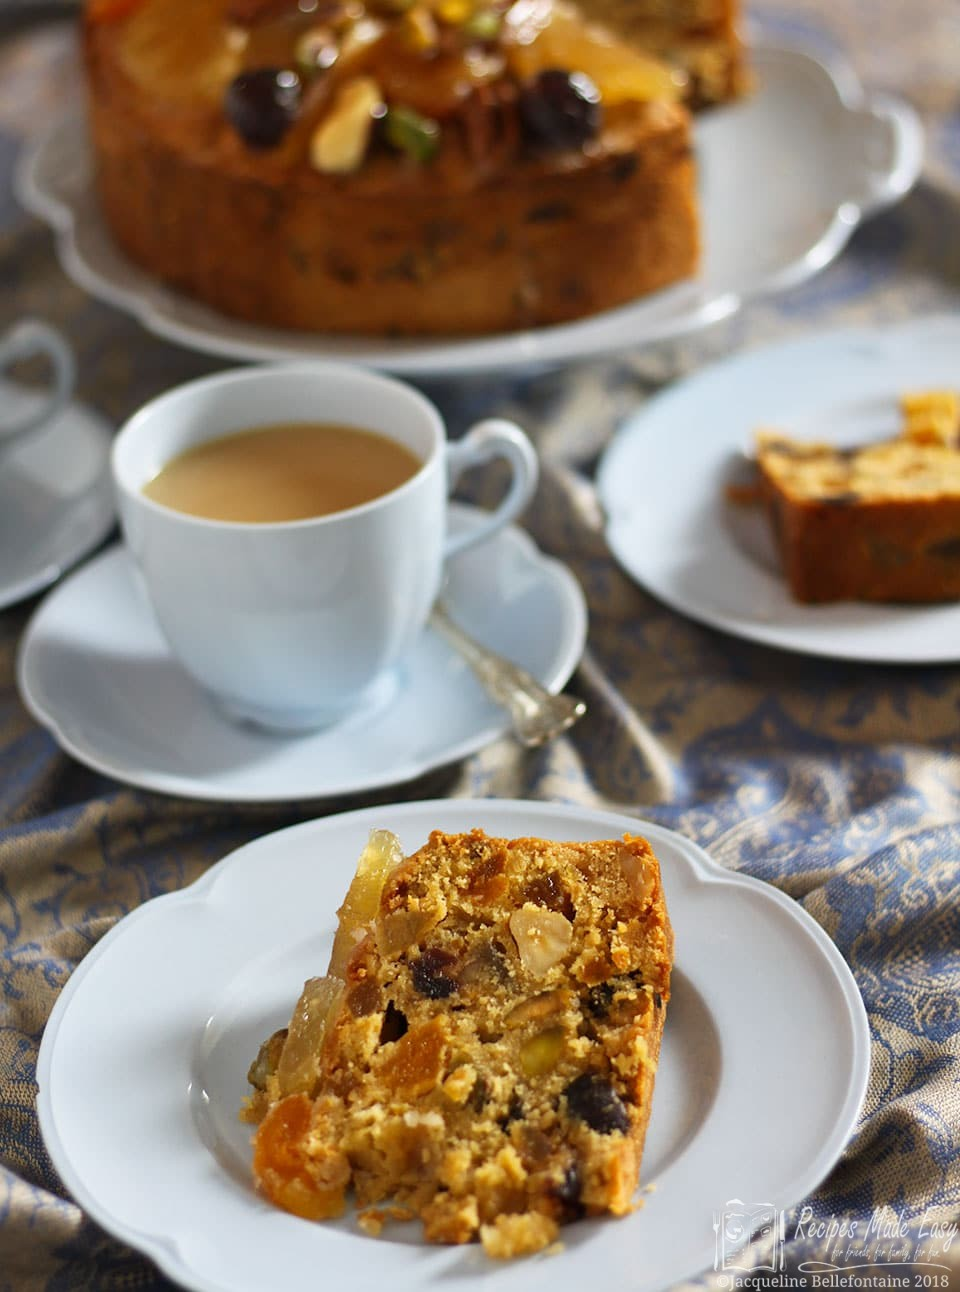 Slice of special fruit and nut cake. Recipes made easy.